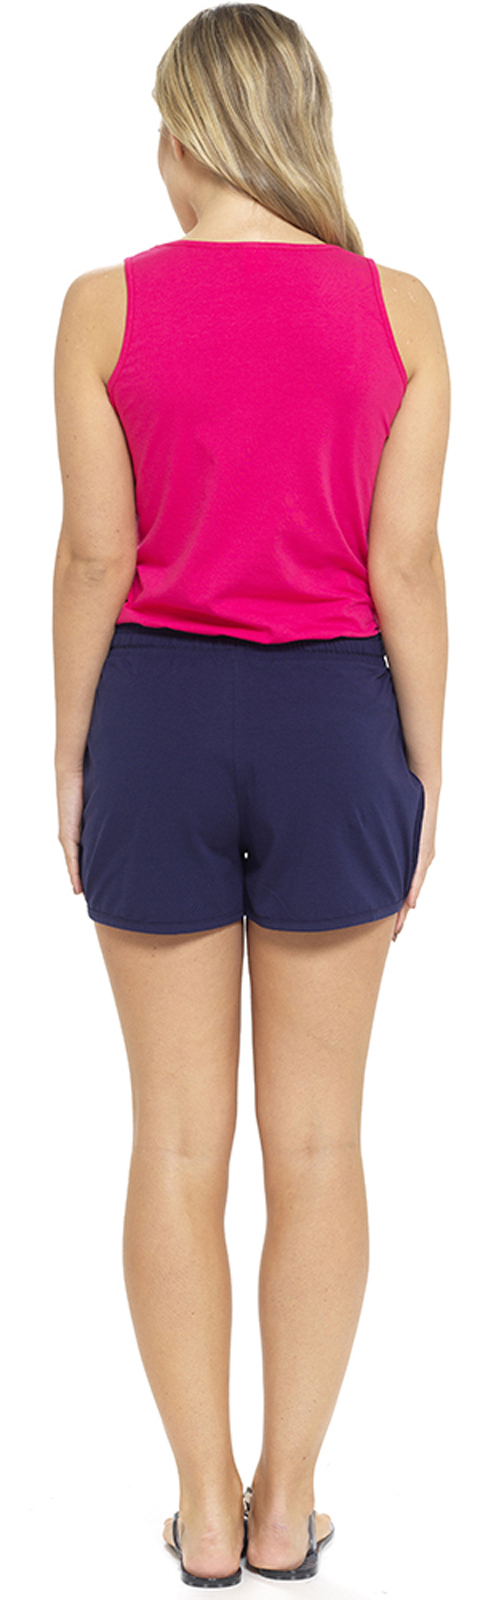 Soxy Ladies Cotton Blend Summer Shorts Lounge Beach Shorts UK Sizes £ - £ Prime. out of 5 stars Metzuyan Ladies Linen Shorts with Pockets - Summer Beach Hot Pants. NOROZE Womens Cotton Combat Chino Capri Cargo Shorts. £ - £ Prime. 4 out of 5 stars